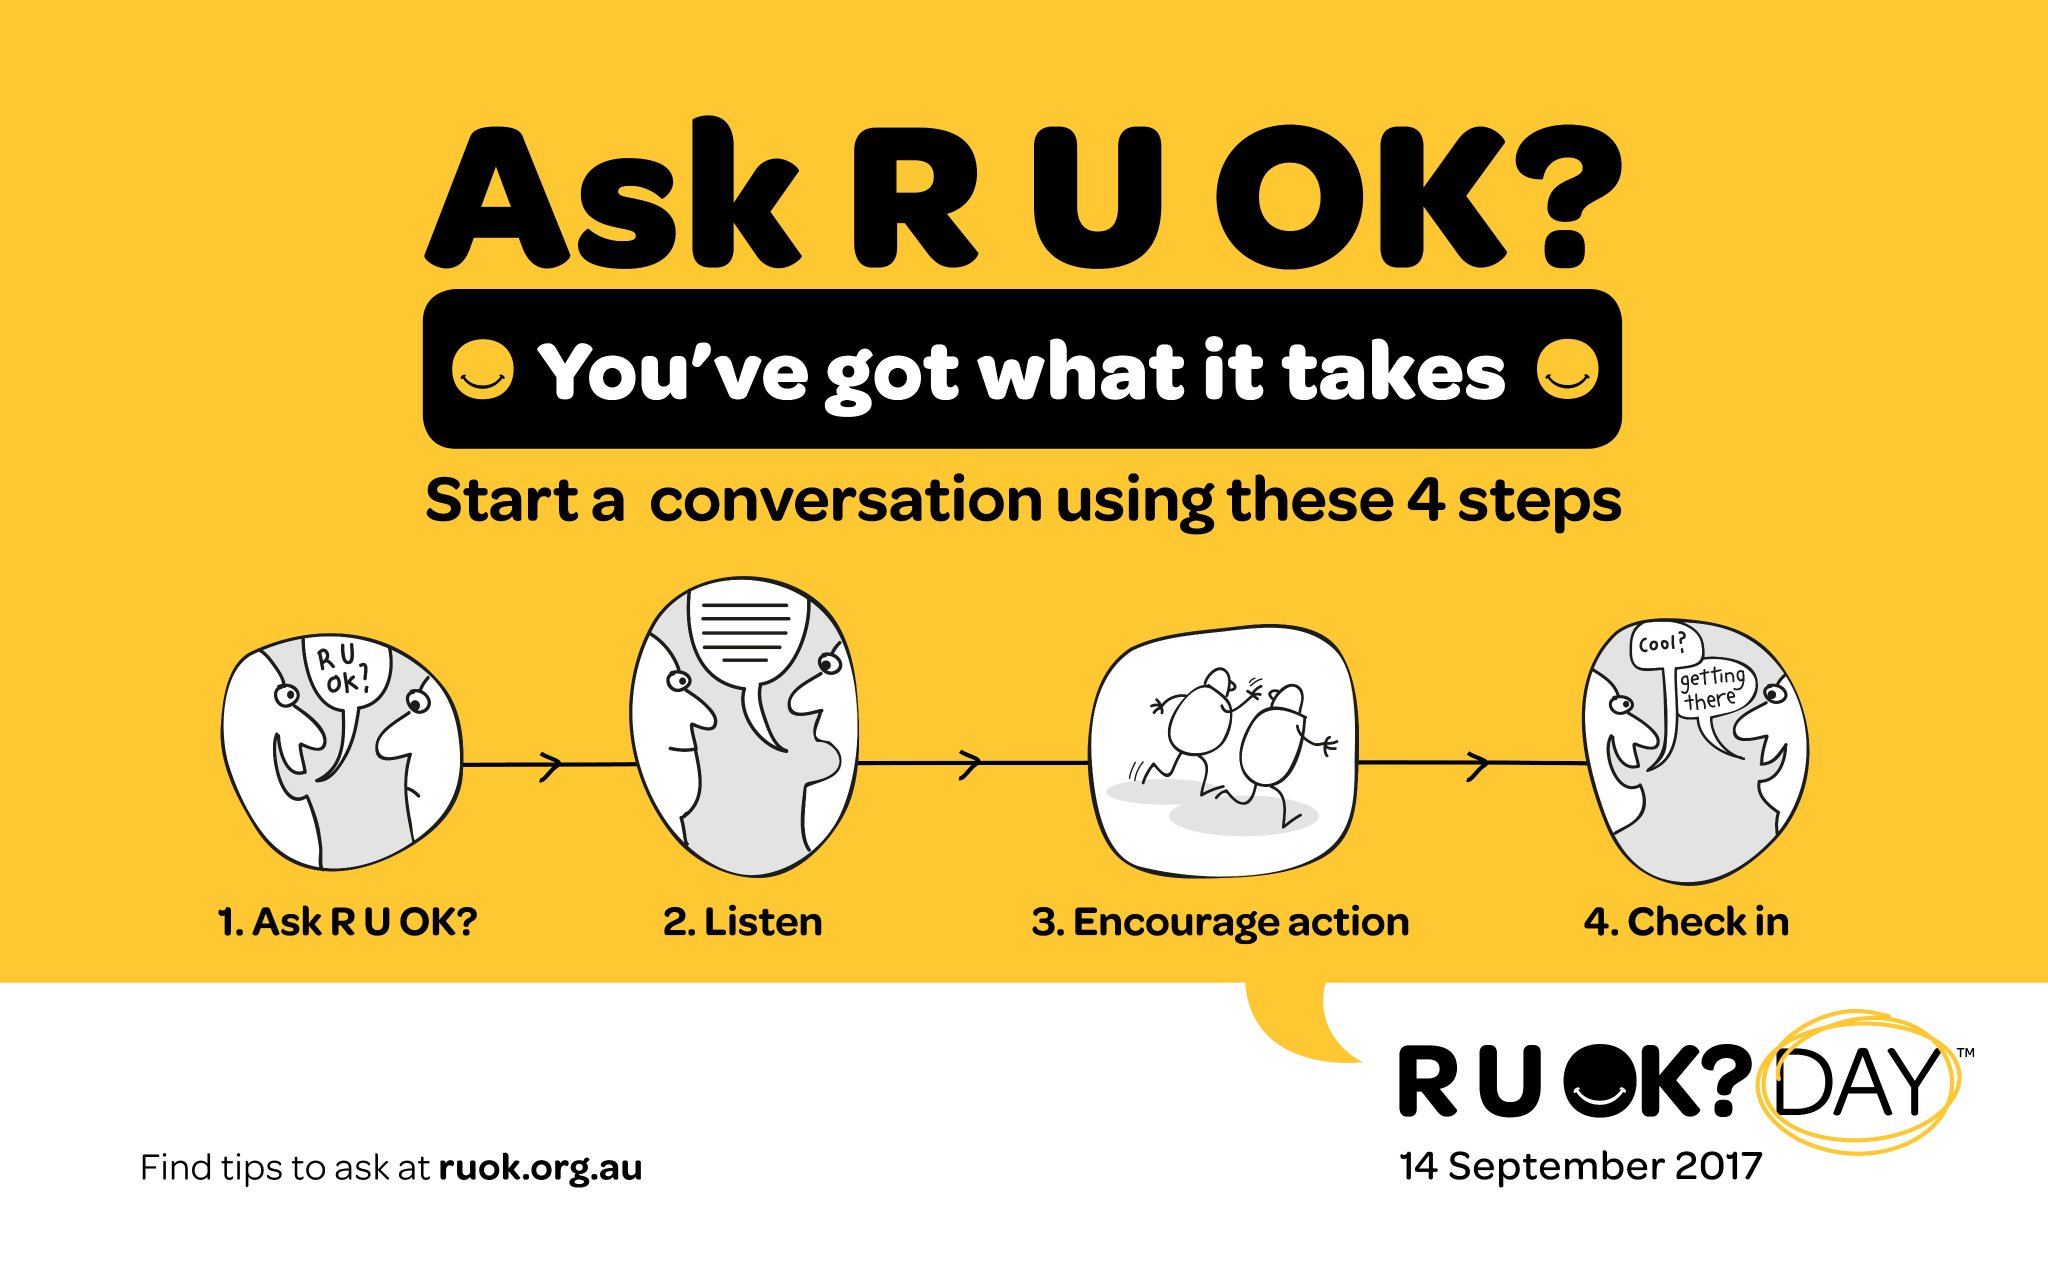 r u ok day 2018 - photo #1